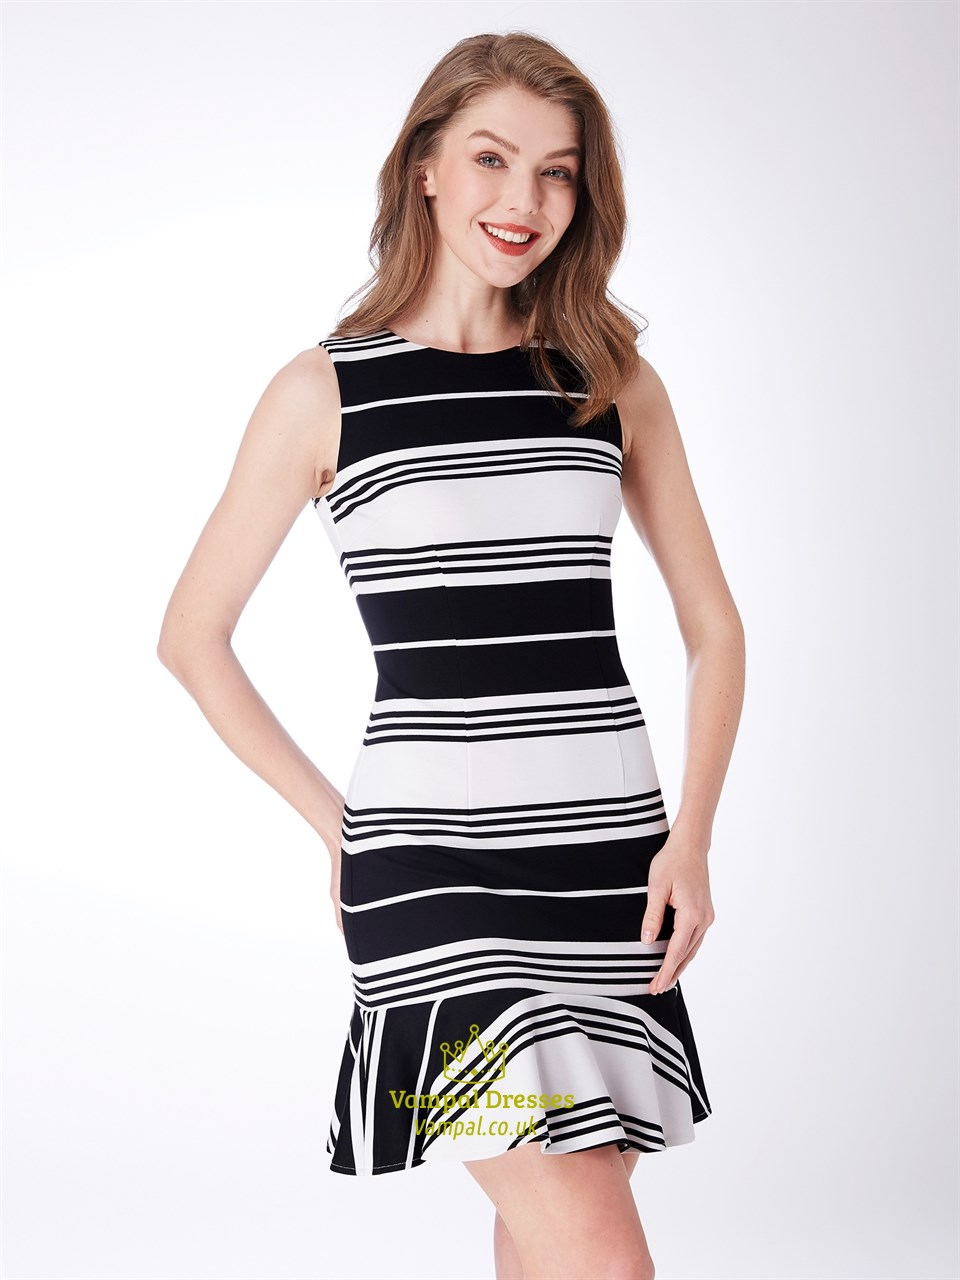 High Neck Sleeveless Sheath Black And White Knee Length Striped Dress 0cd2ce0c5